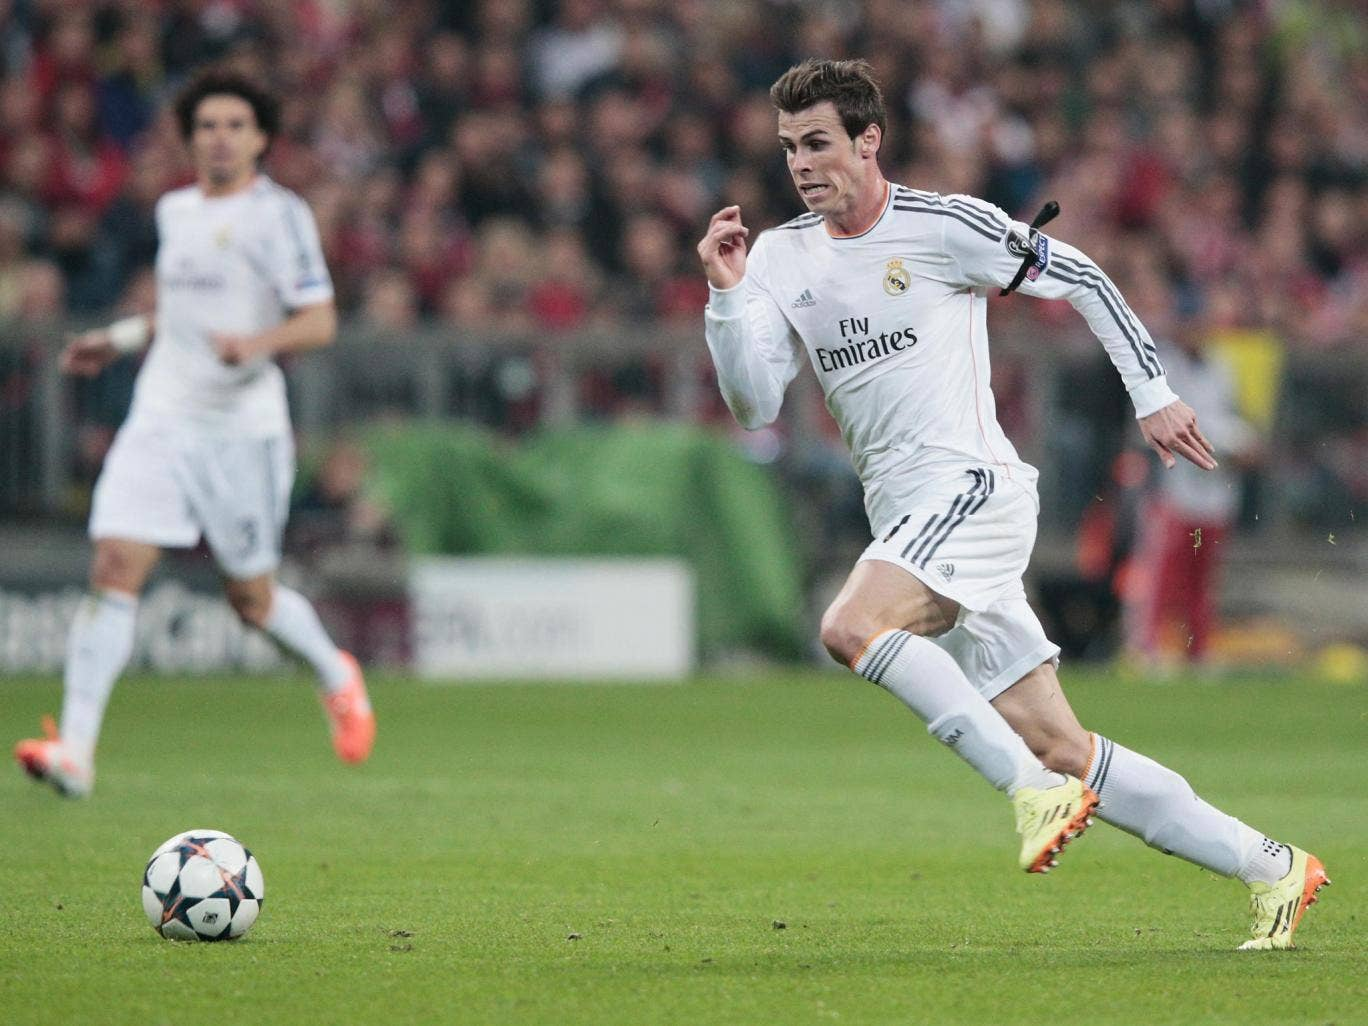 Gareth Bale wants to end his season with victory in the Champions League final